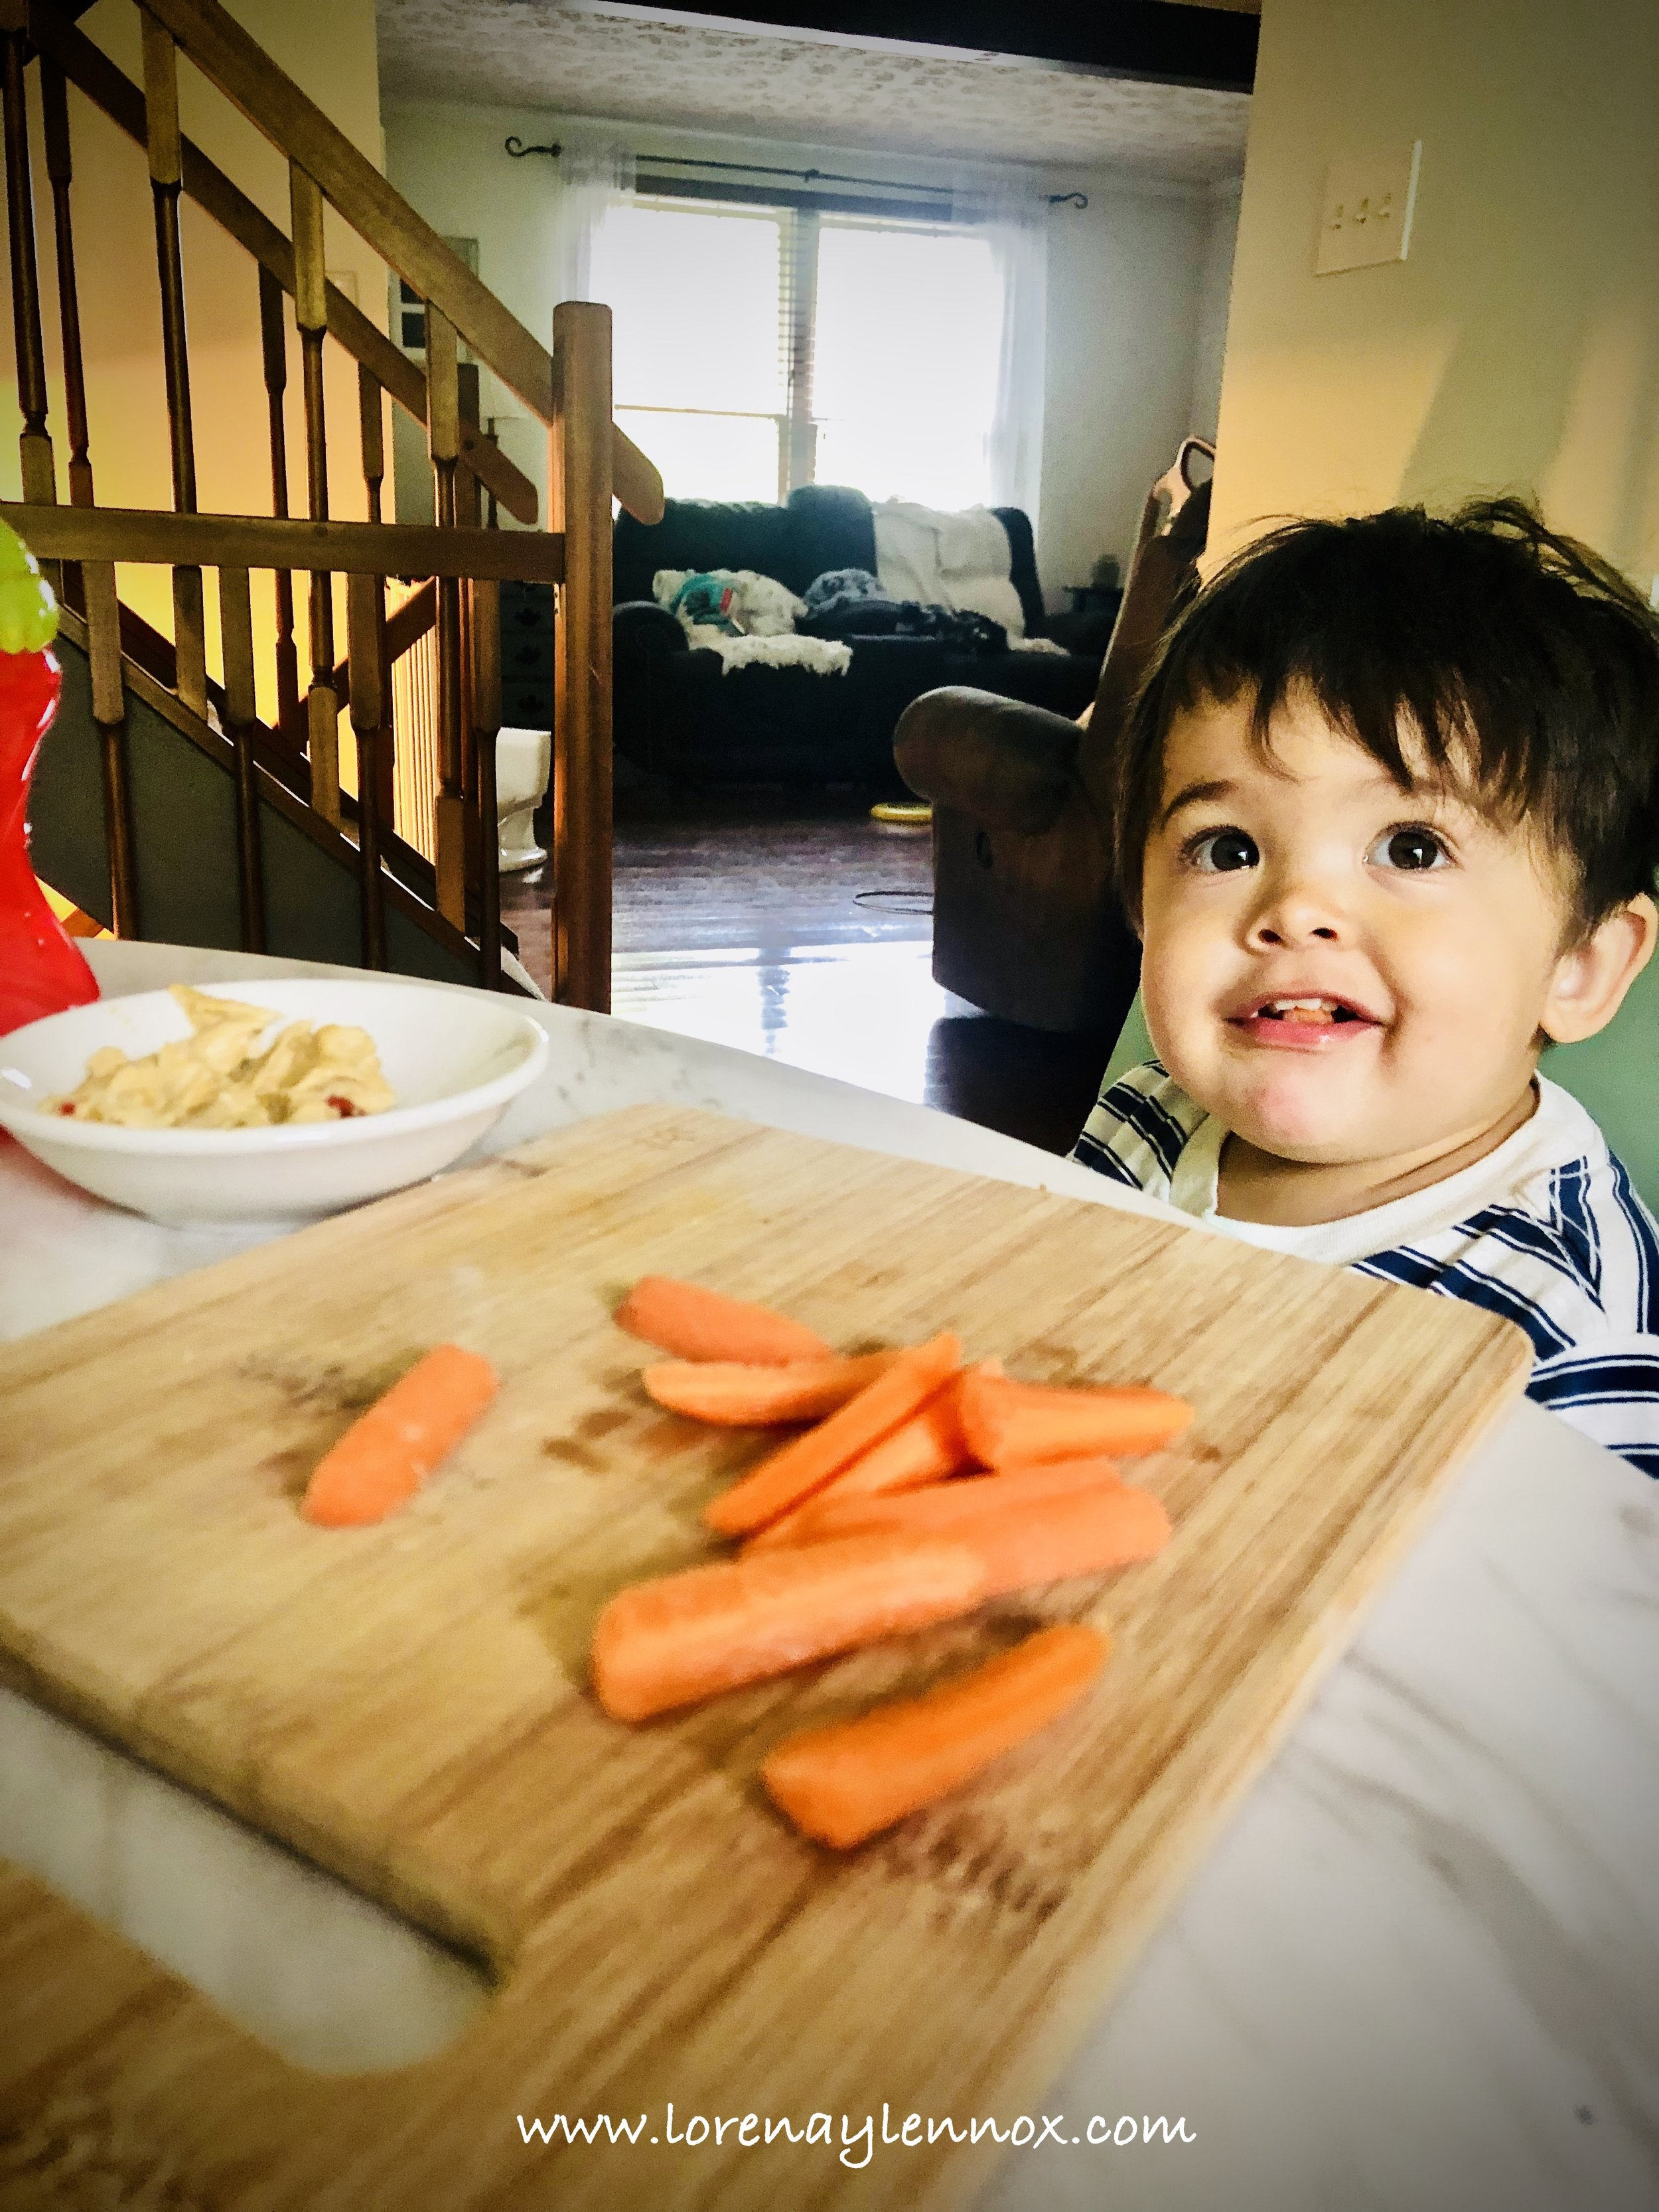 What Were Some of the First Foods You Gave Your Baby During Baby Led Weaning?